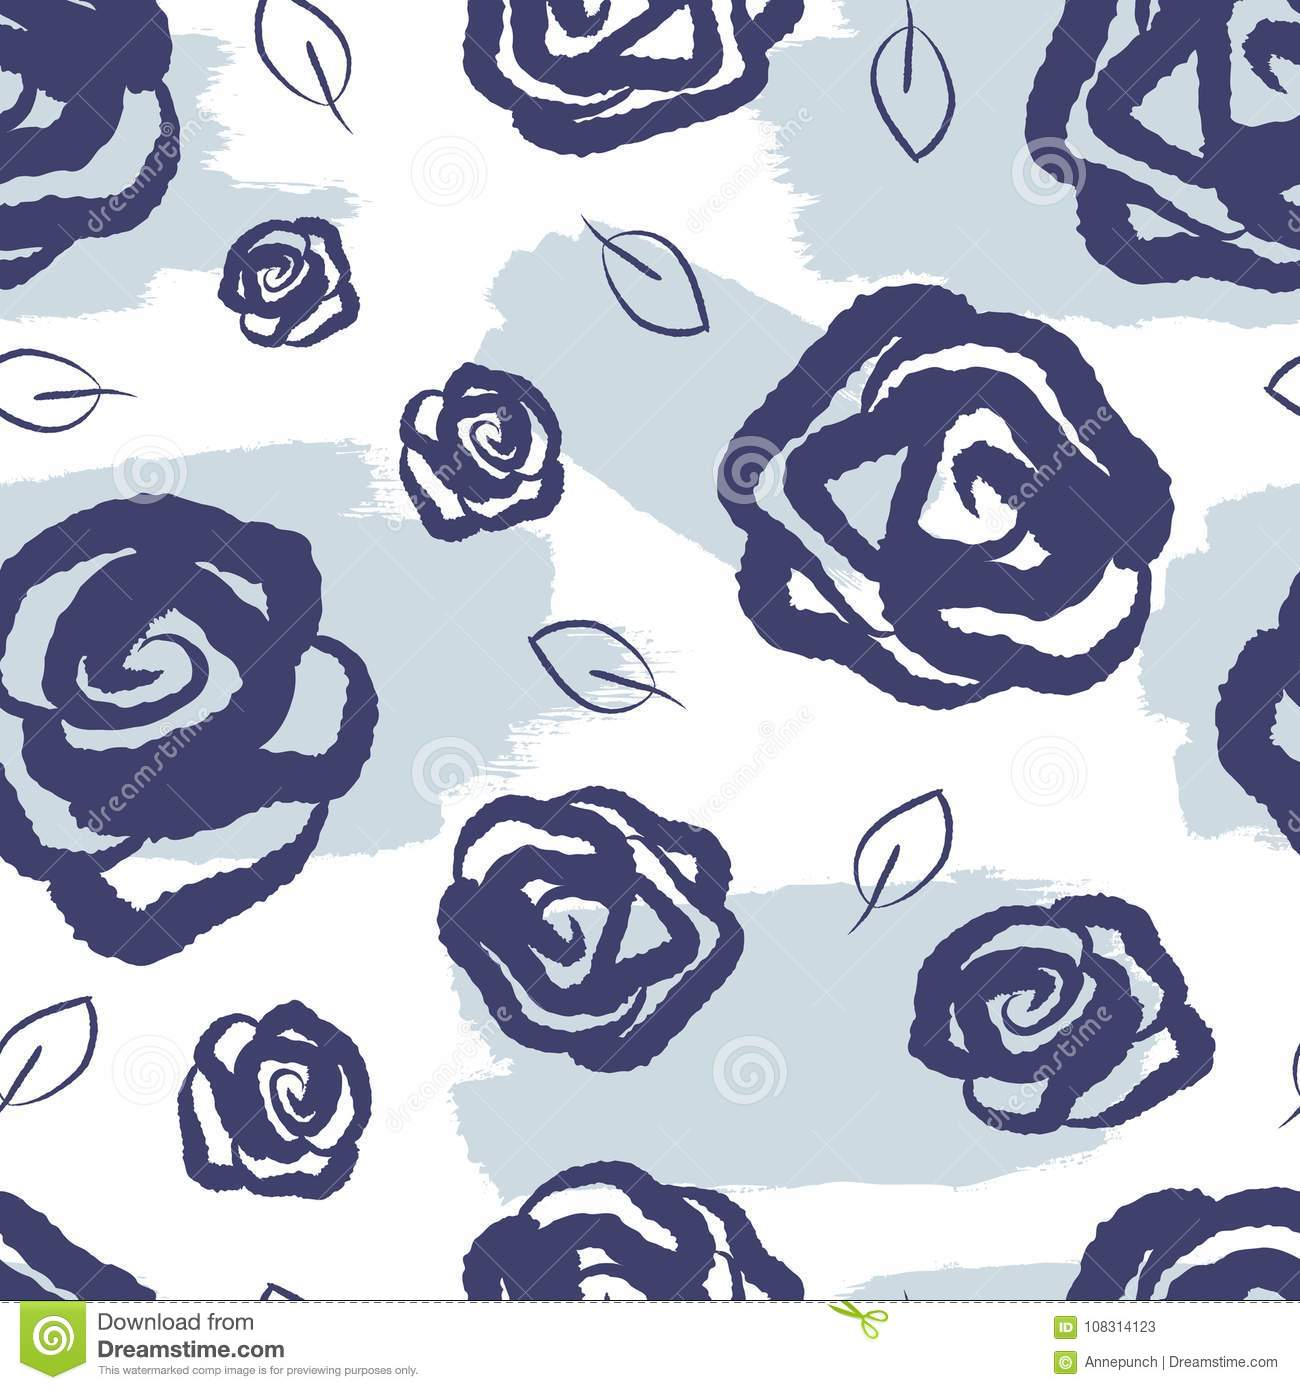 Feminine floral seamless pattern. Watercolor stains, roses and leaves drawn by hand.